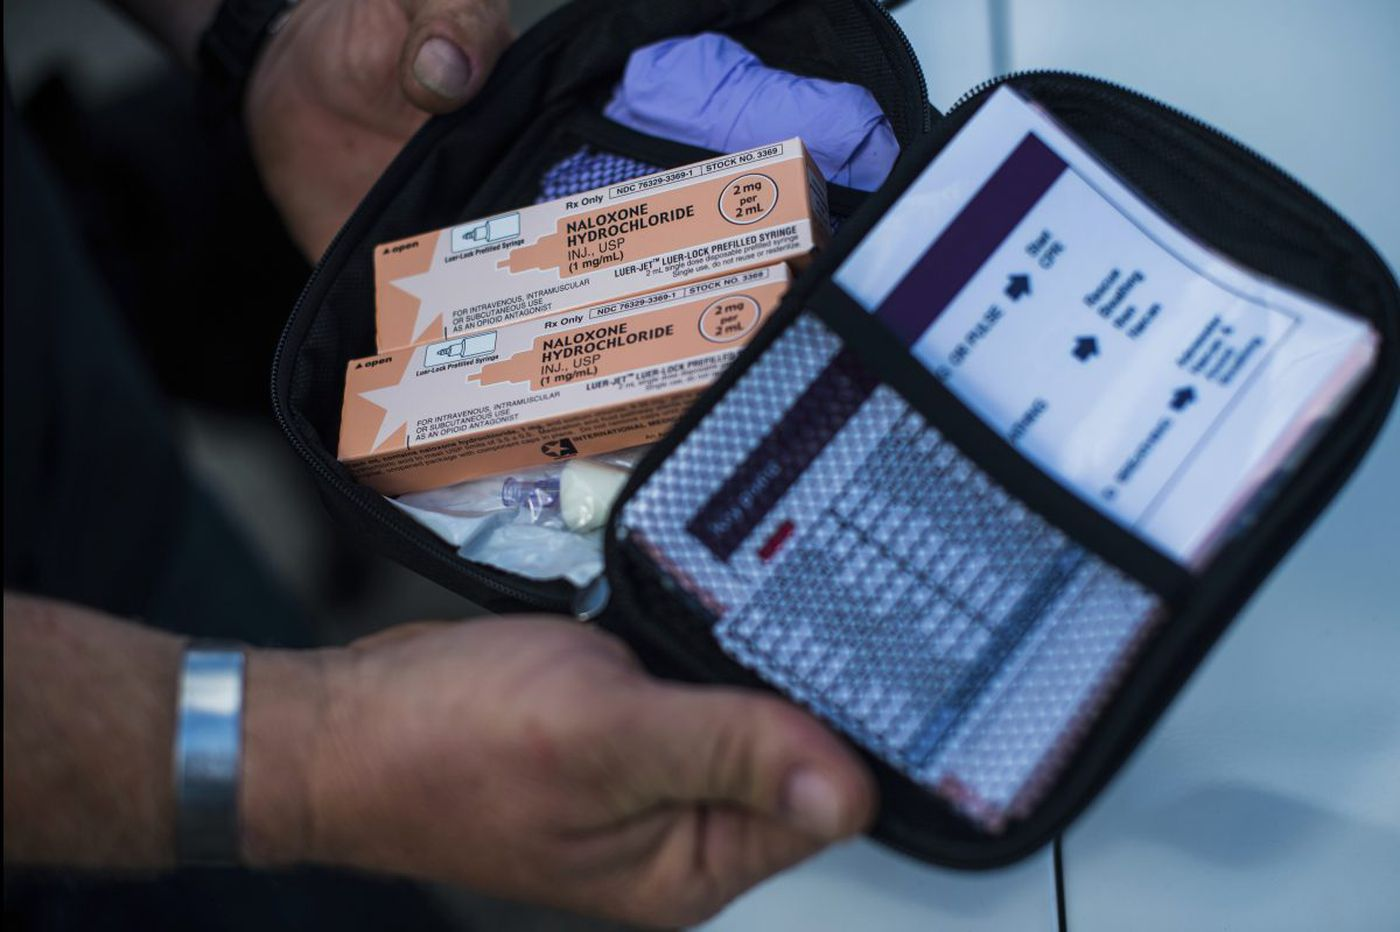 On a Center City street, I watched a heroin user revived with Narcan